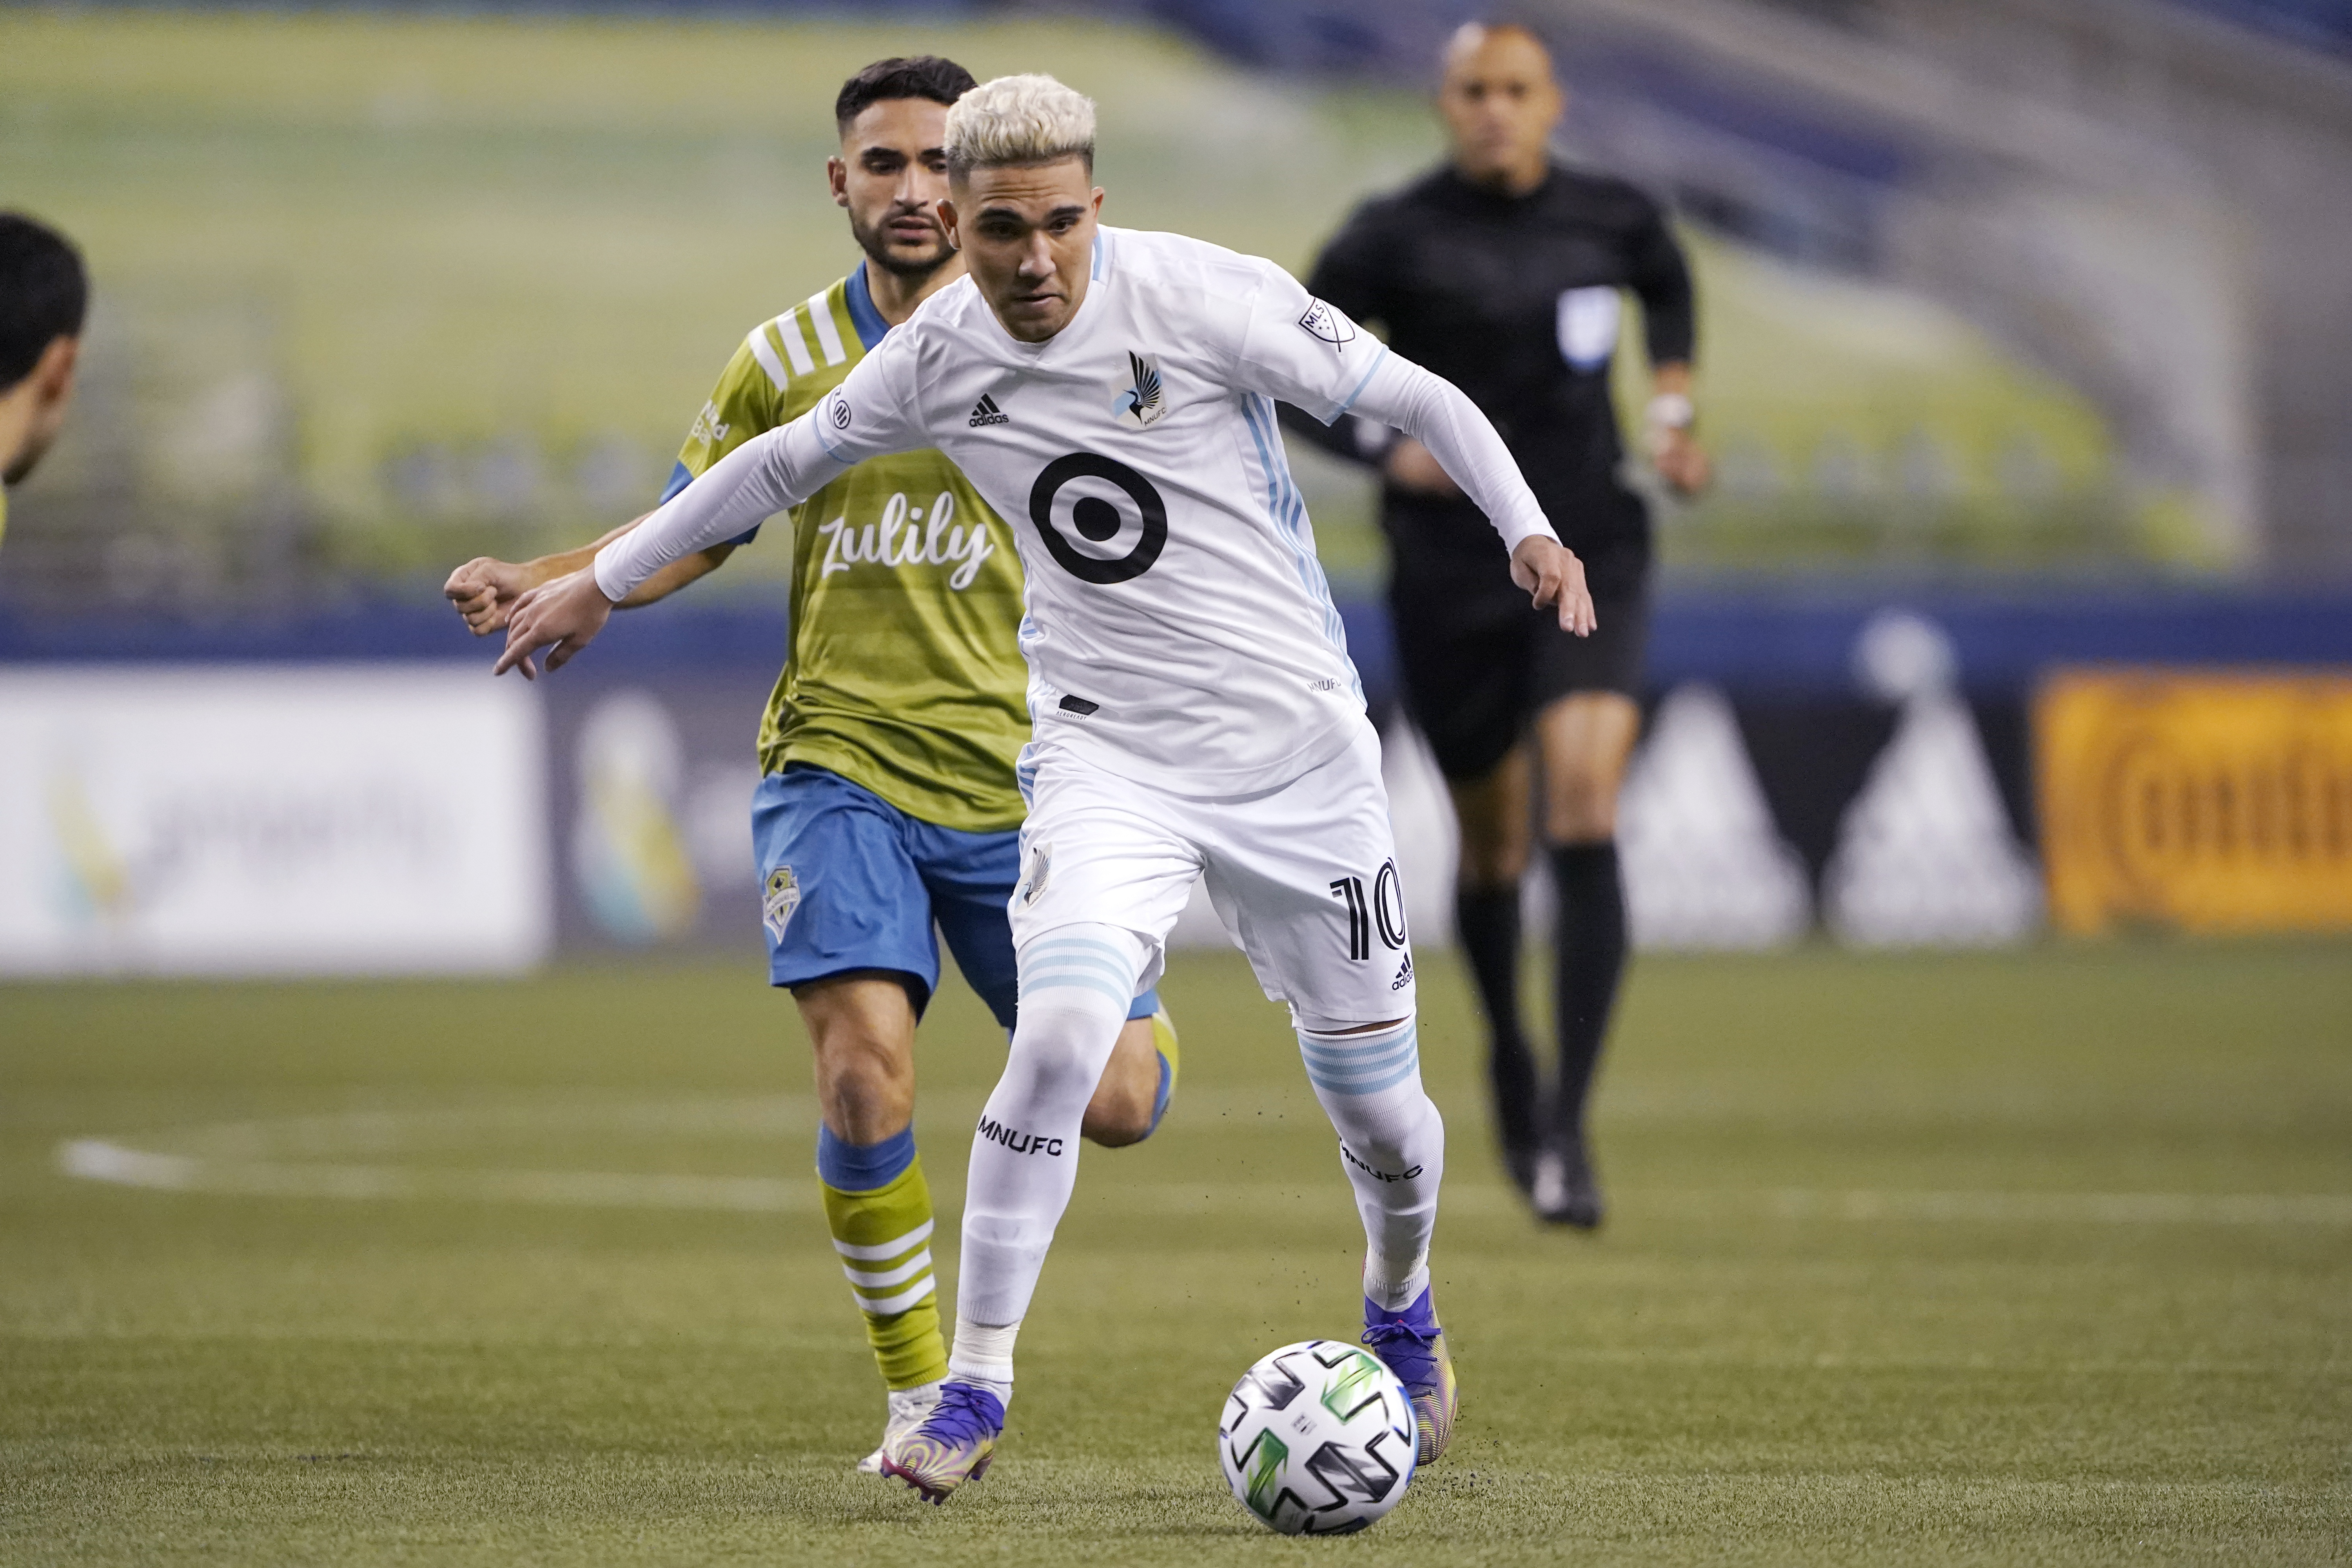 Minnesota United midfielder Emanuel Reynoso showed in a short amount of time that he is a player Loons fans can look forward to building around.